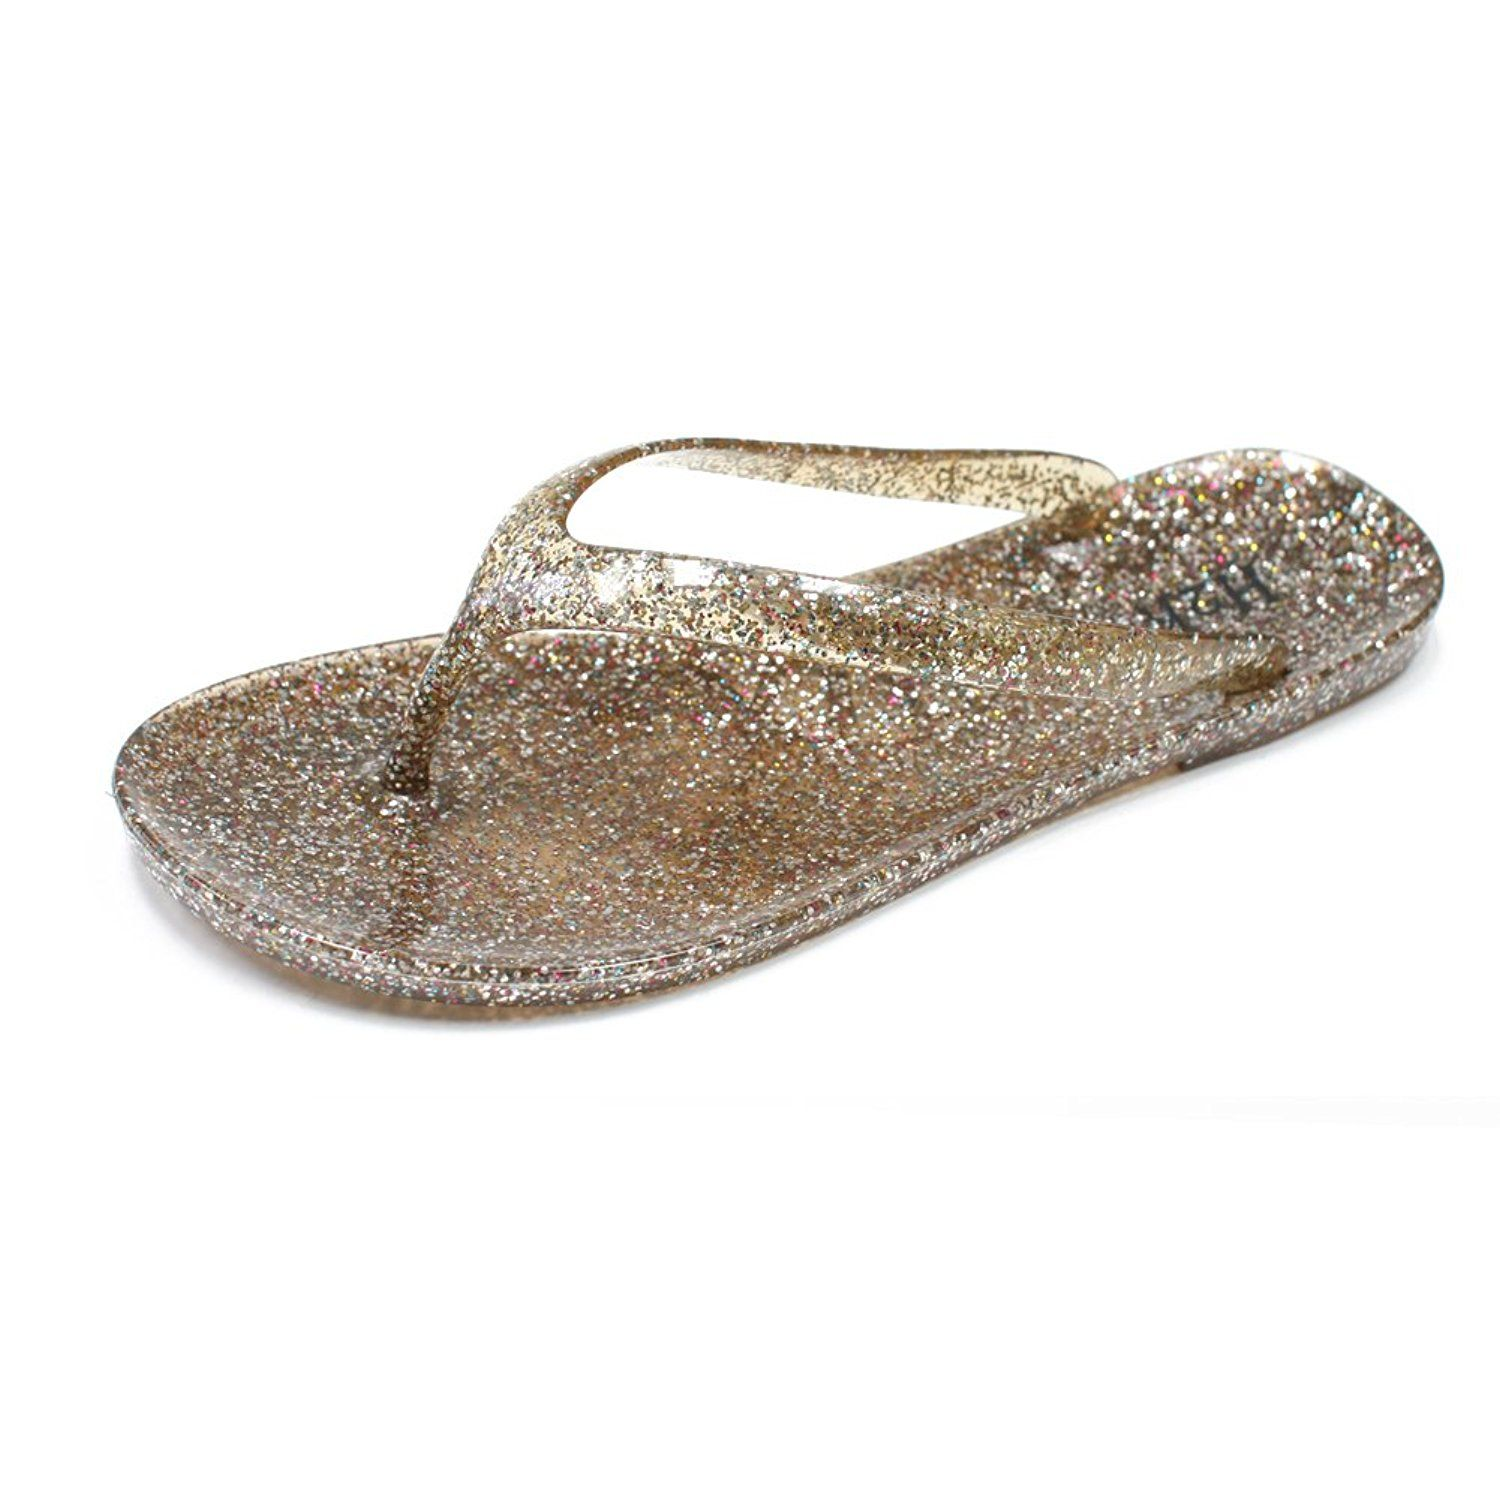 e861428a84c92 H2K  EVE  Women s  Waterproof  Glitter Jelly Slip-On Flip-Flops  Thong  Sandals  Slippers Shoes   Hurry! Check out this great product   Jelly  Sandals